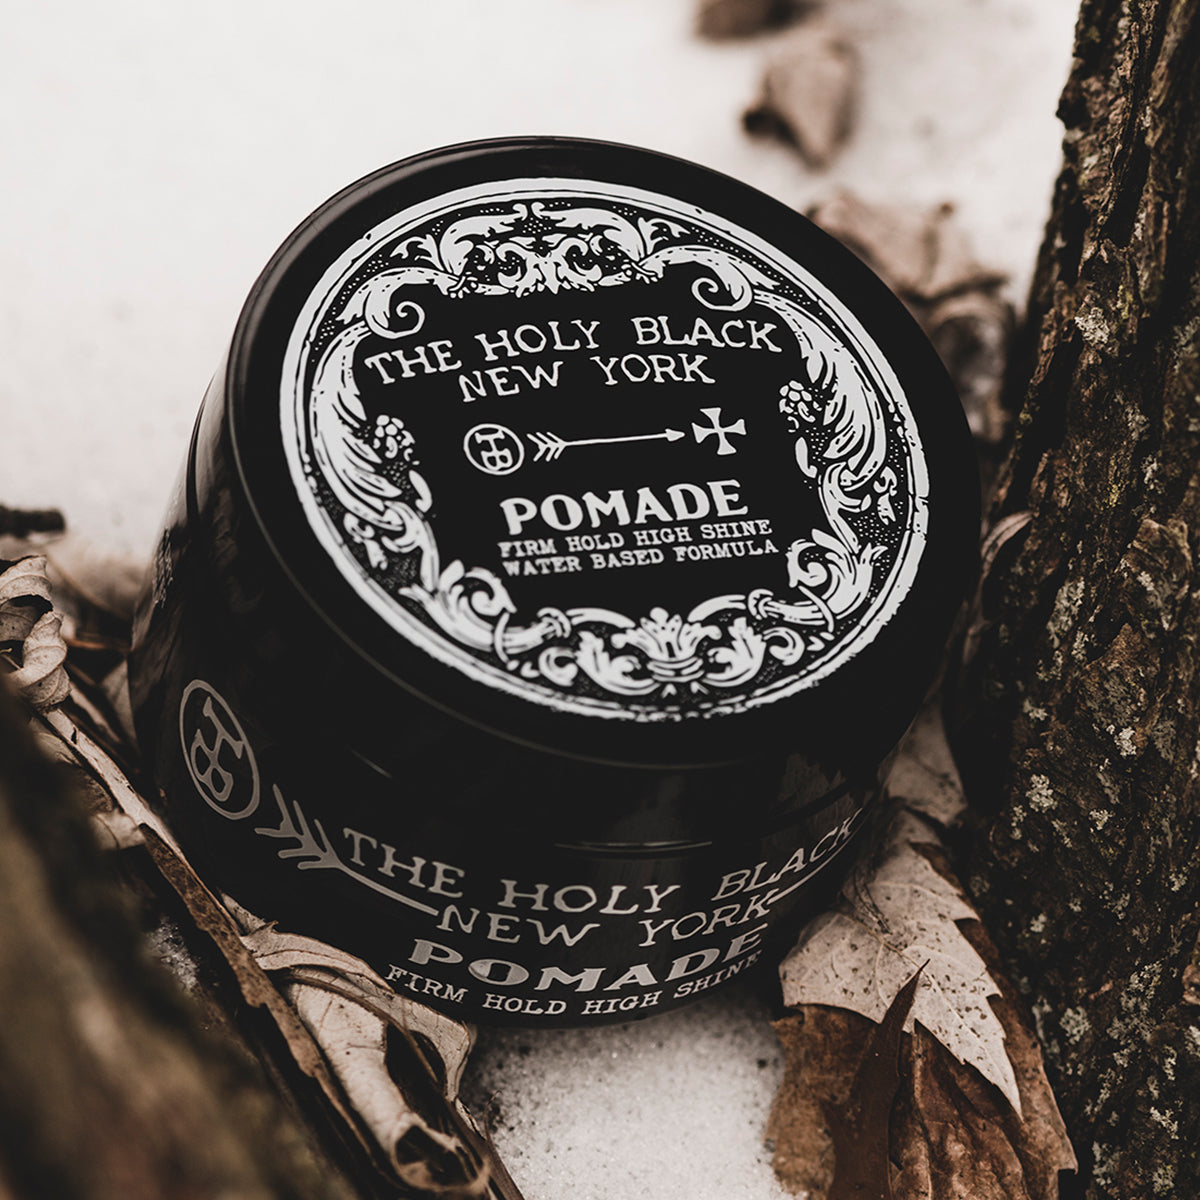 High Shine Original Pomade